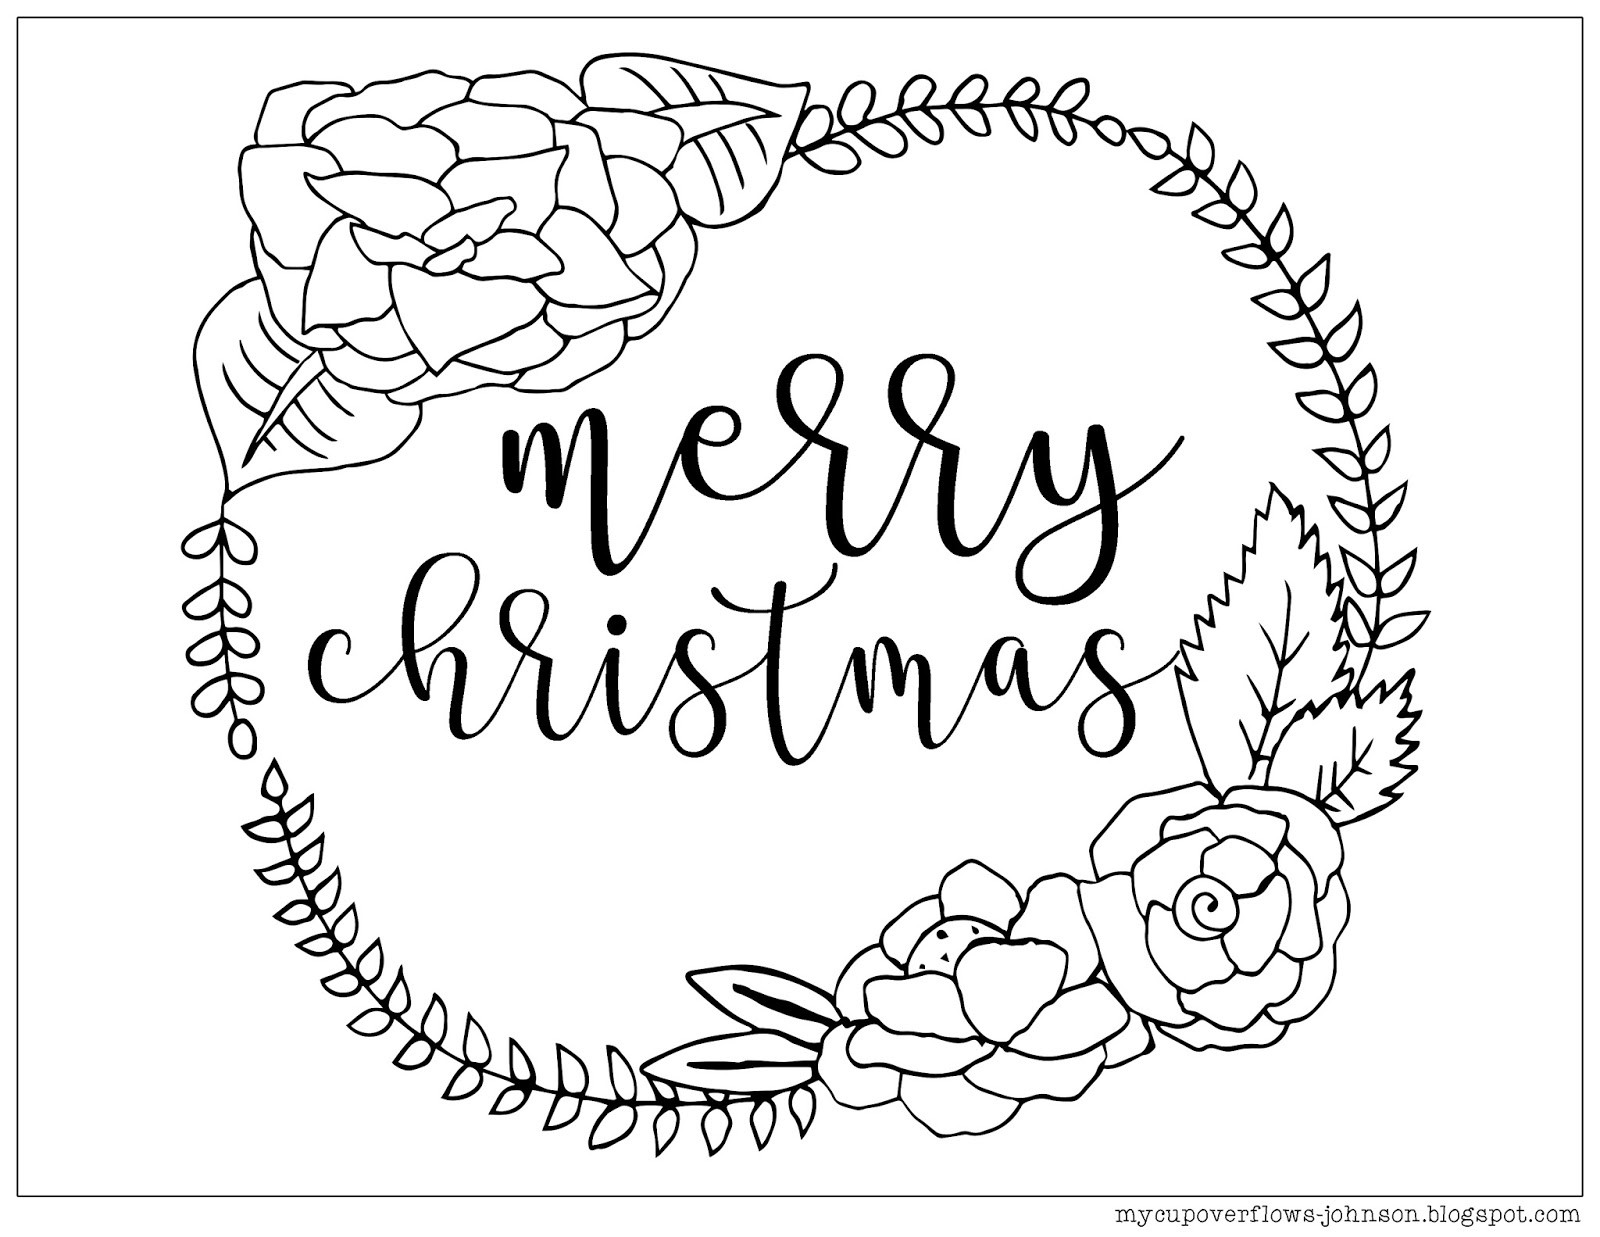 coloring : Christmas Coloring Games Christmas Colouring Pages ... | 1237x1600